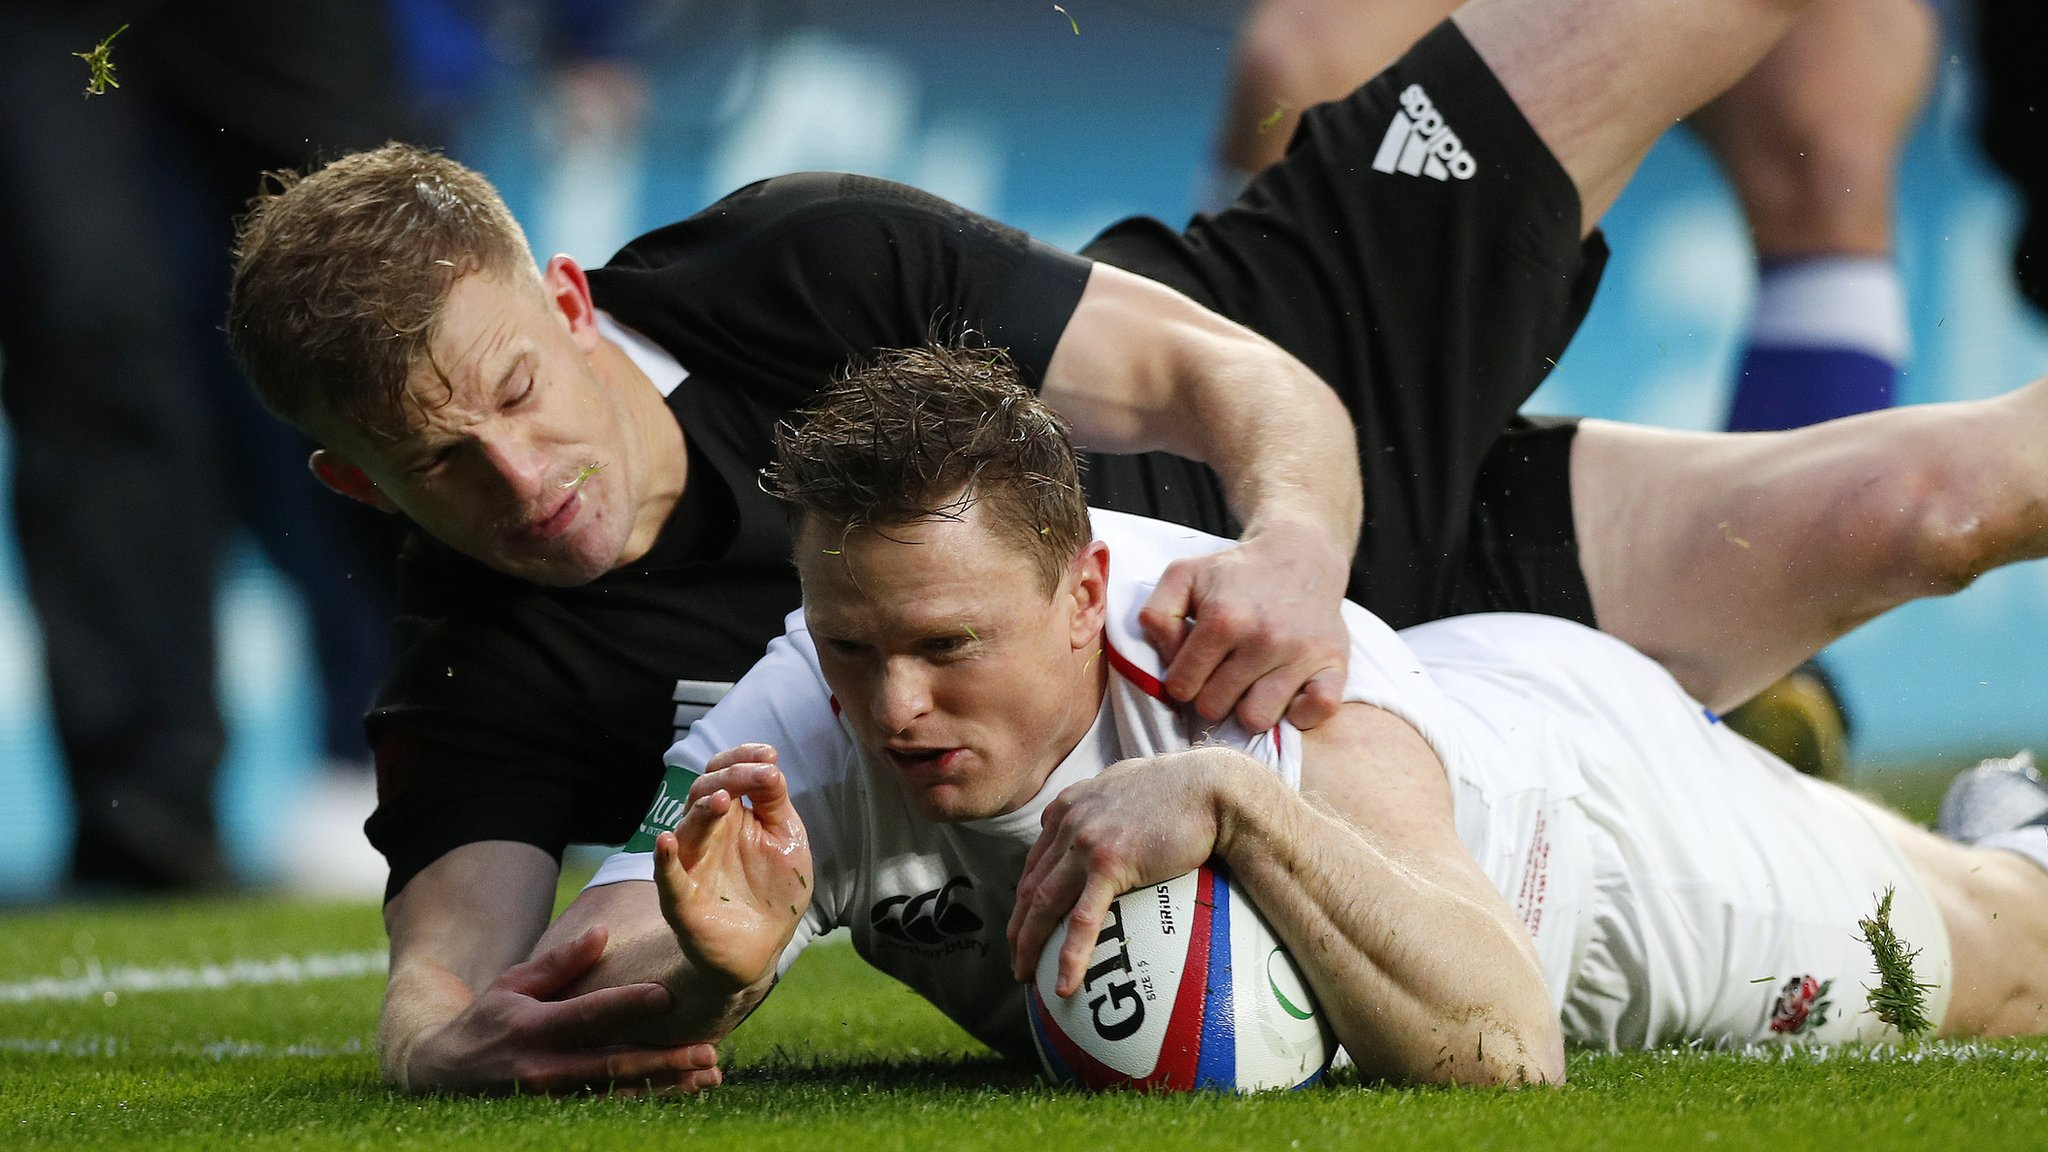 Can you name England's top try scorers?